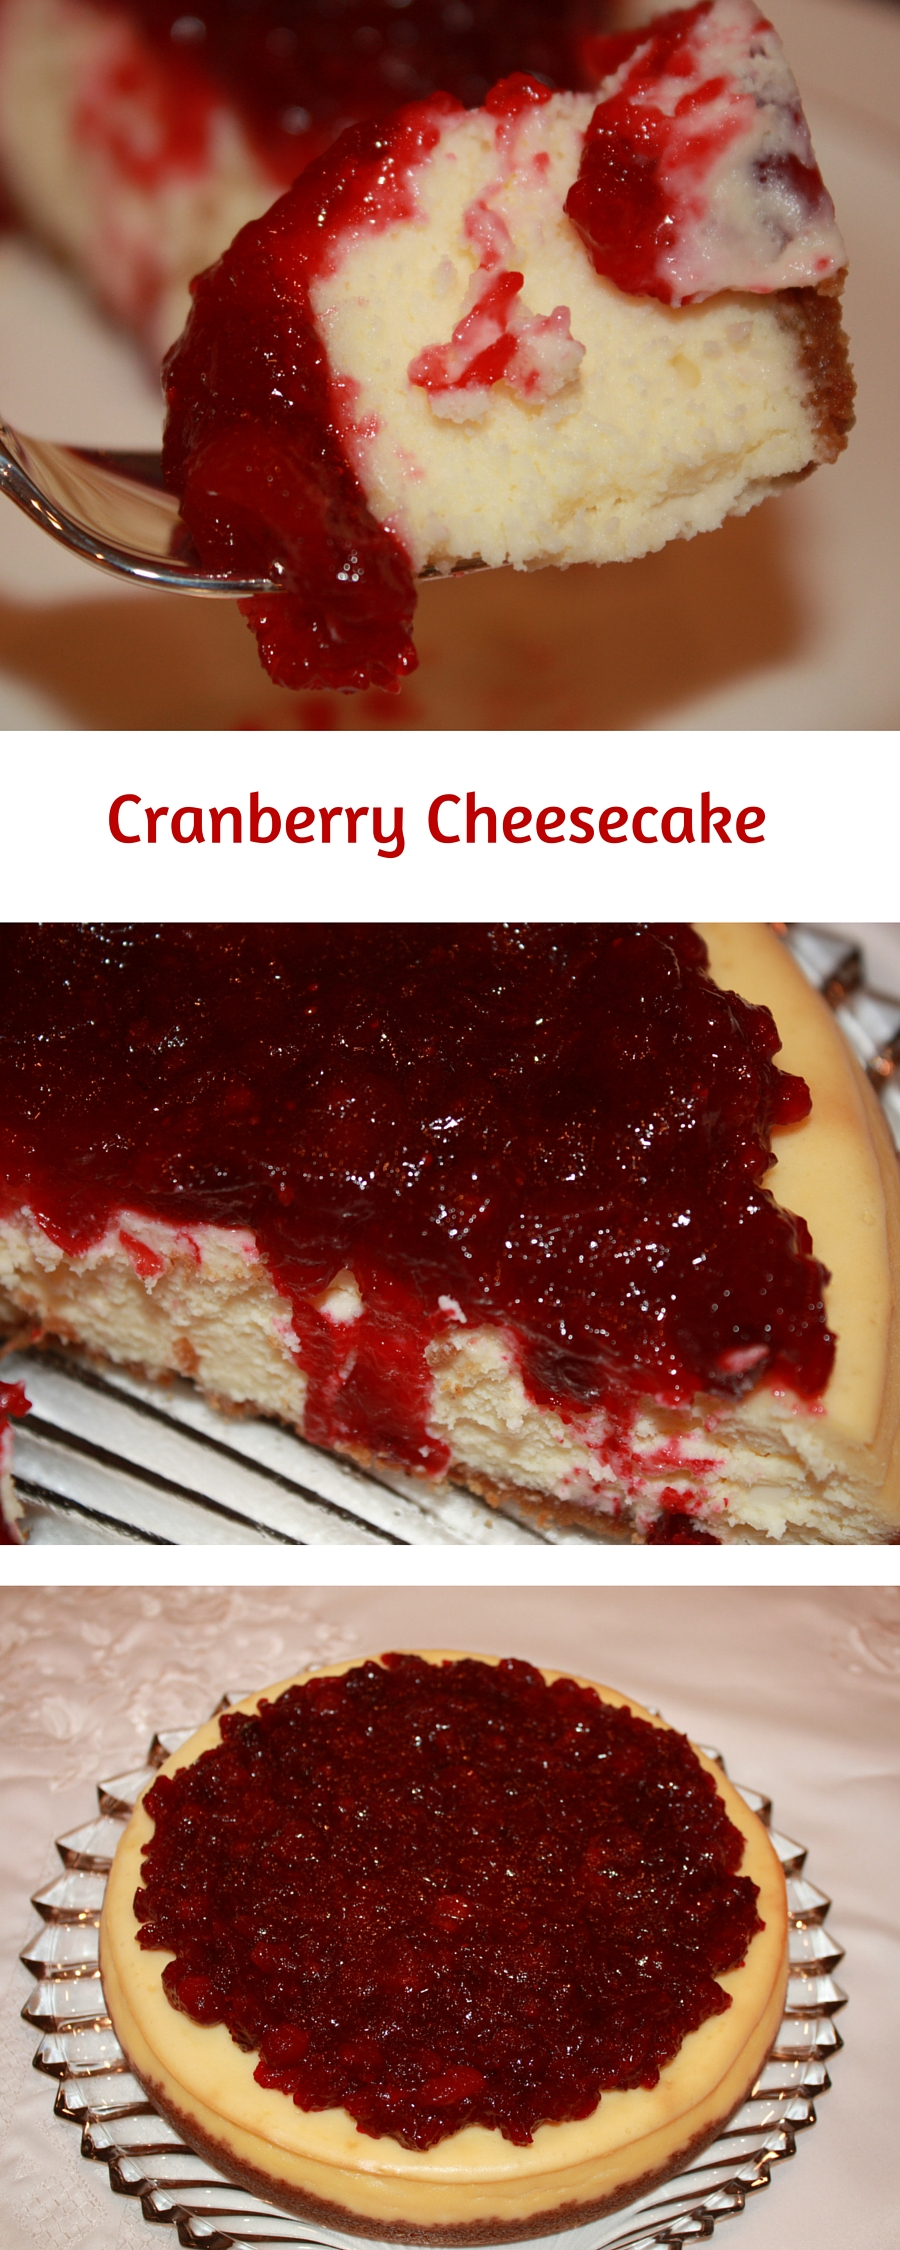 Cranberry Cheesecake is an elegant dessert for Thanksgiving or Christmas. It is also one of the easiest recipes you will make this holiday season.